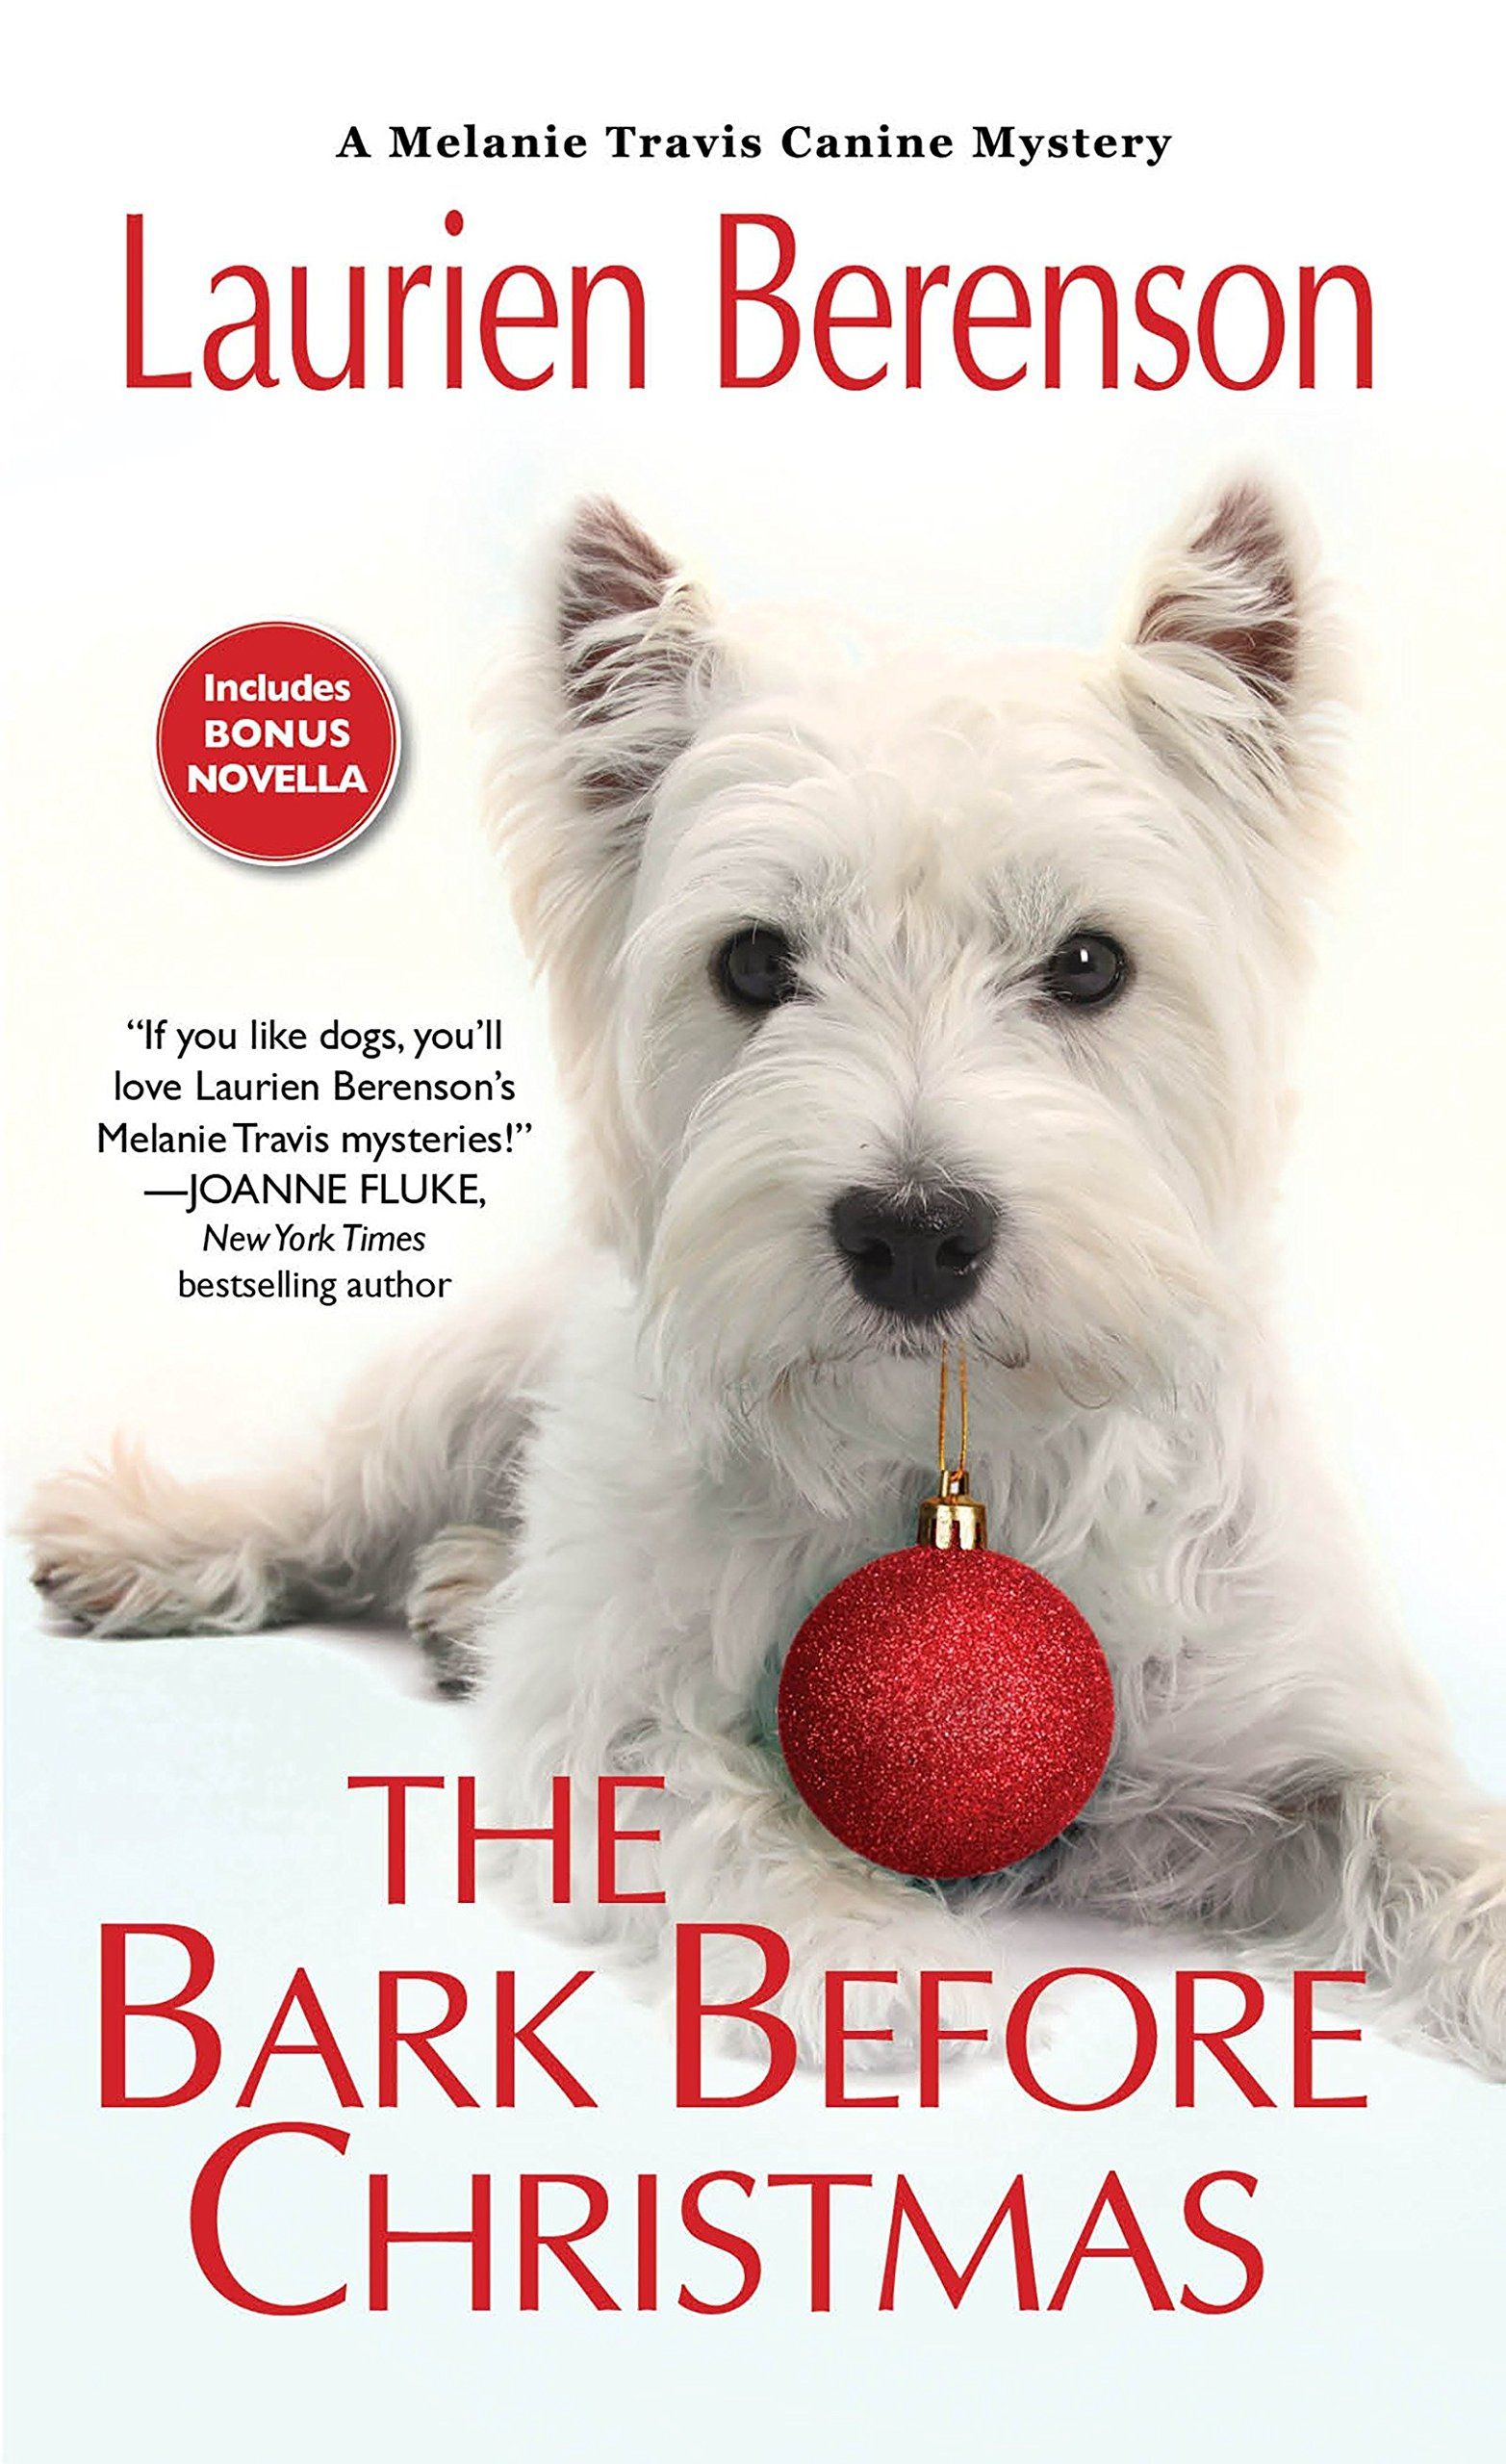 the bark before christmas book cover